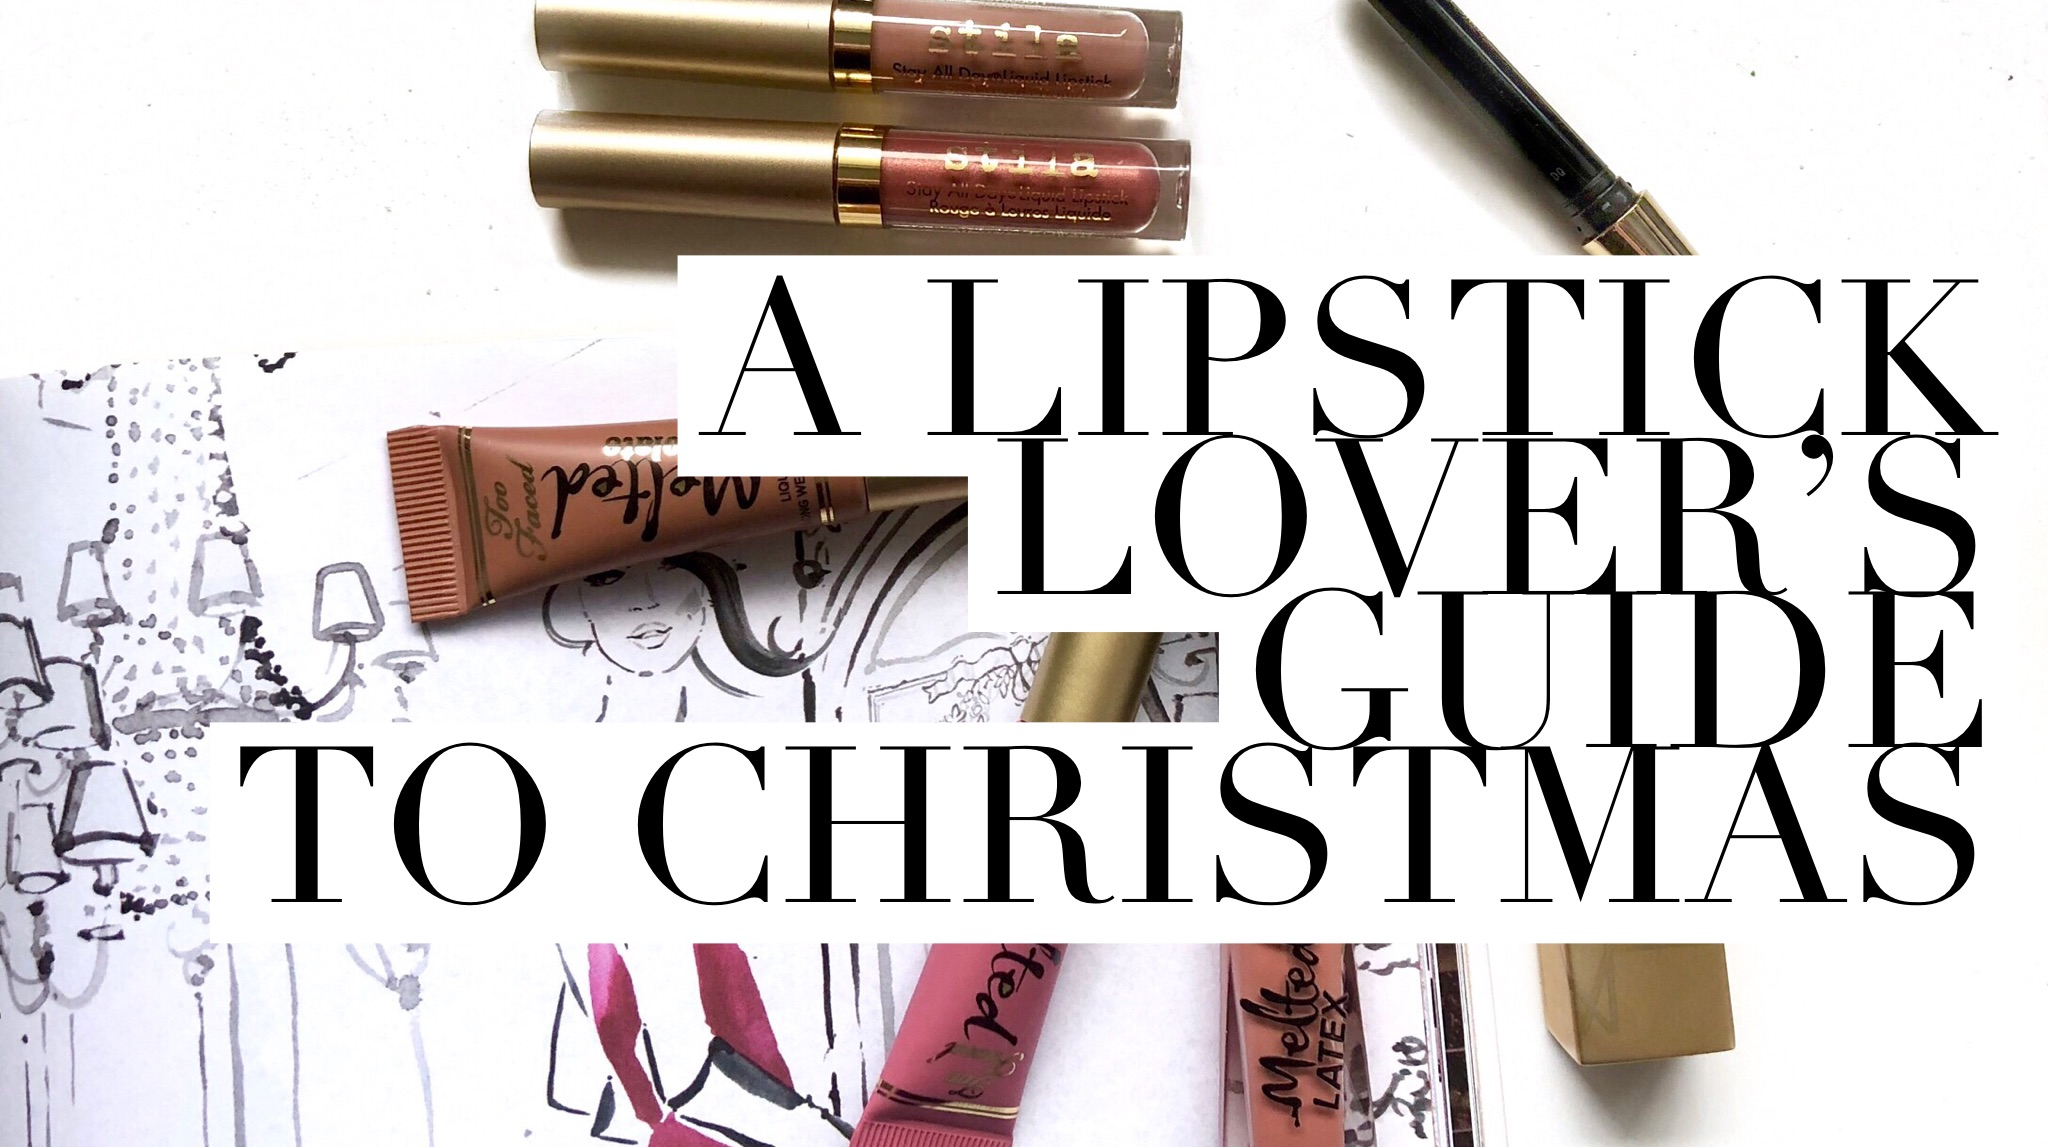 A LIPSTICK LOVER'S GUIDE TO CHRISTMAS 2017